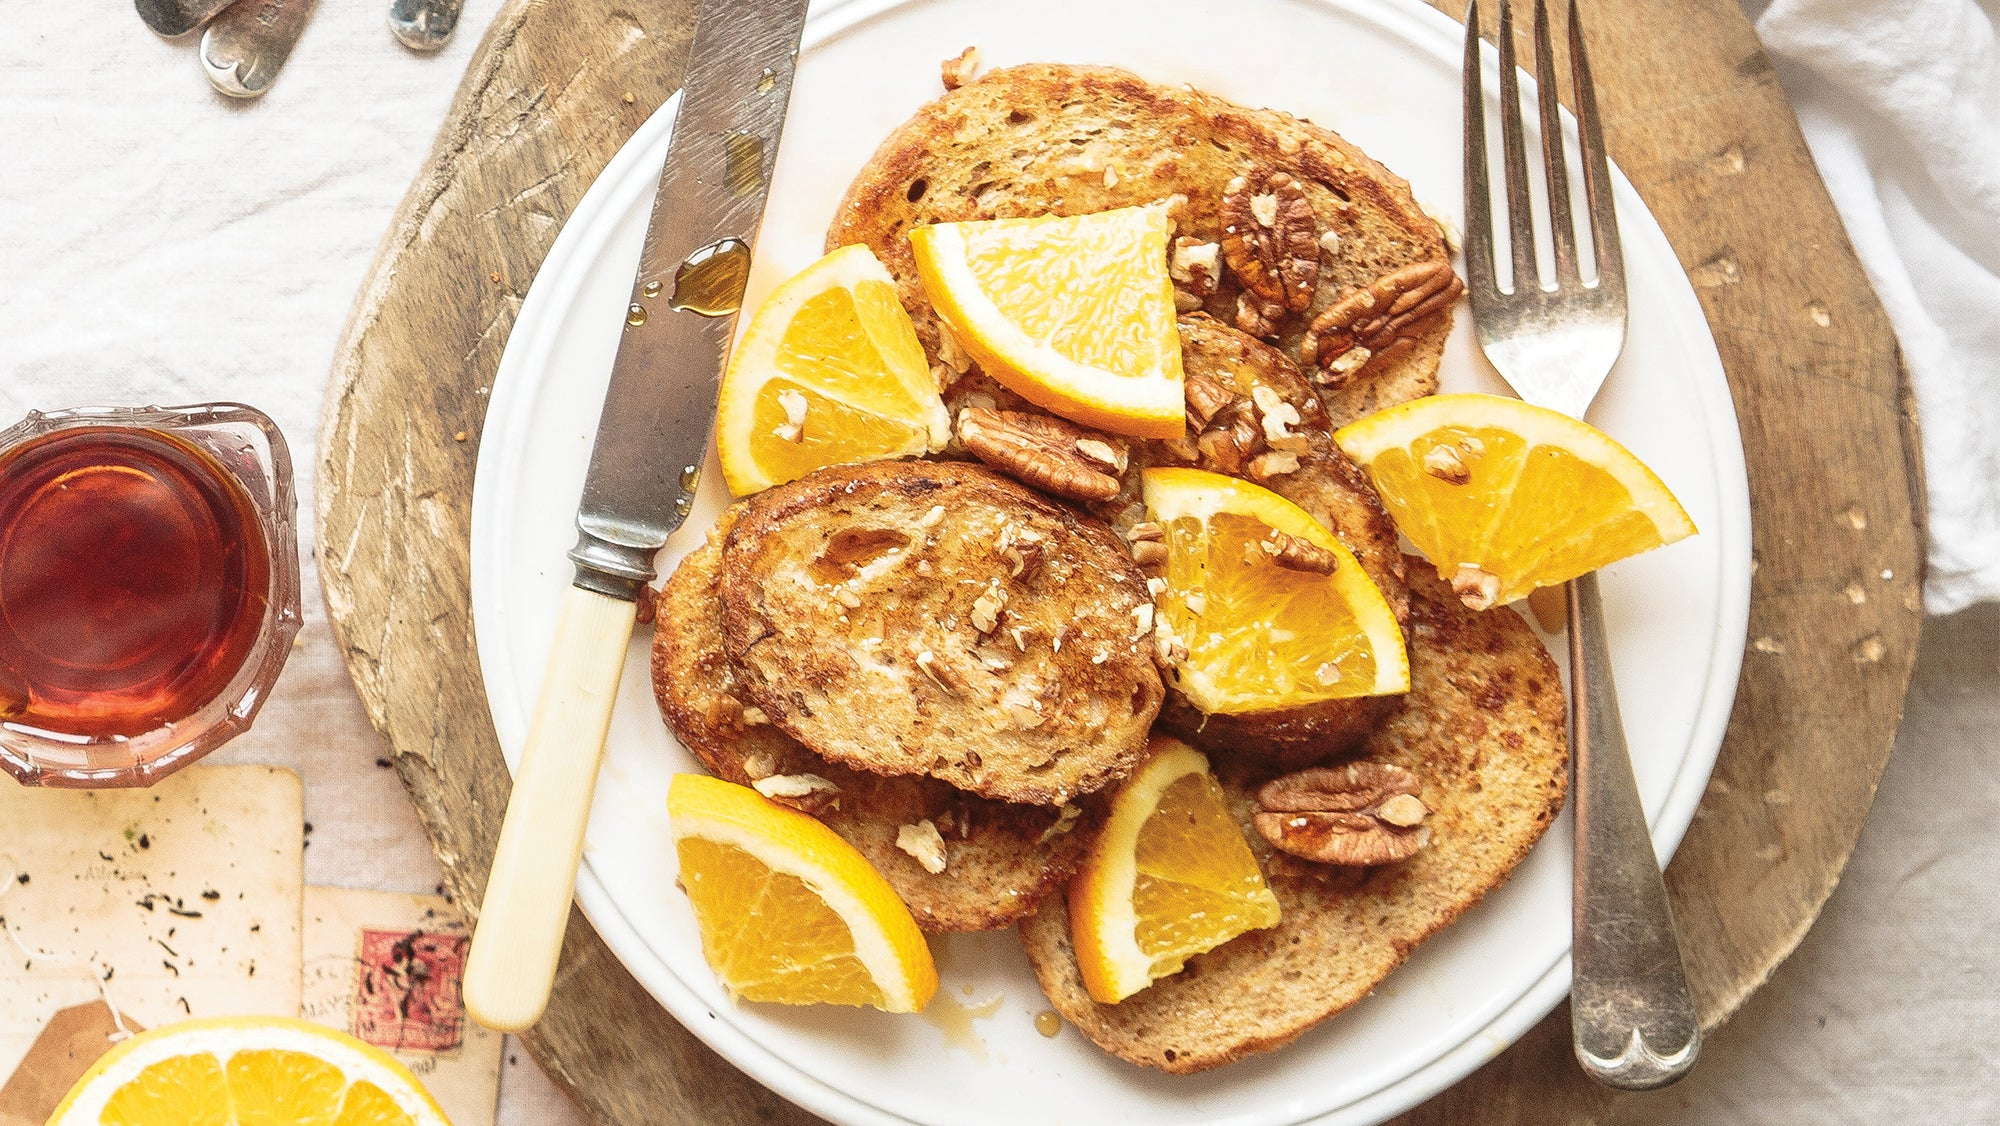 Earl Grey French Toast with Orange Maple Syrup